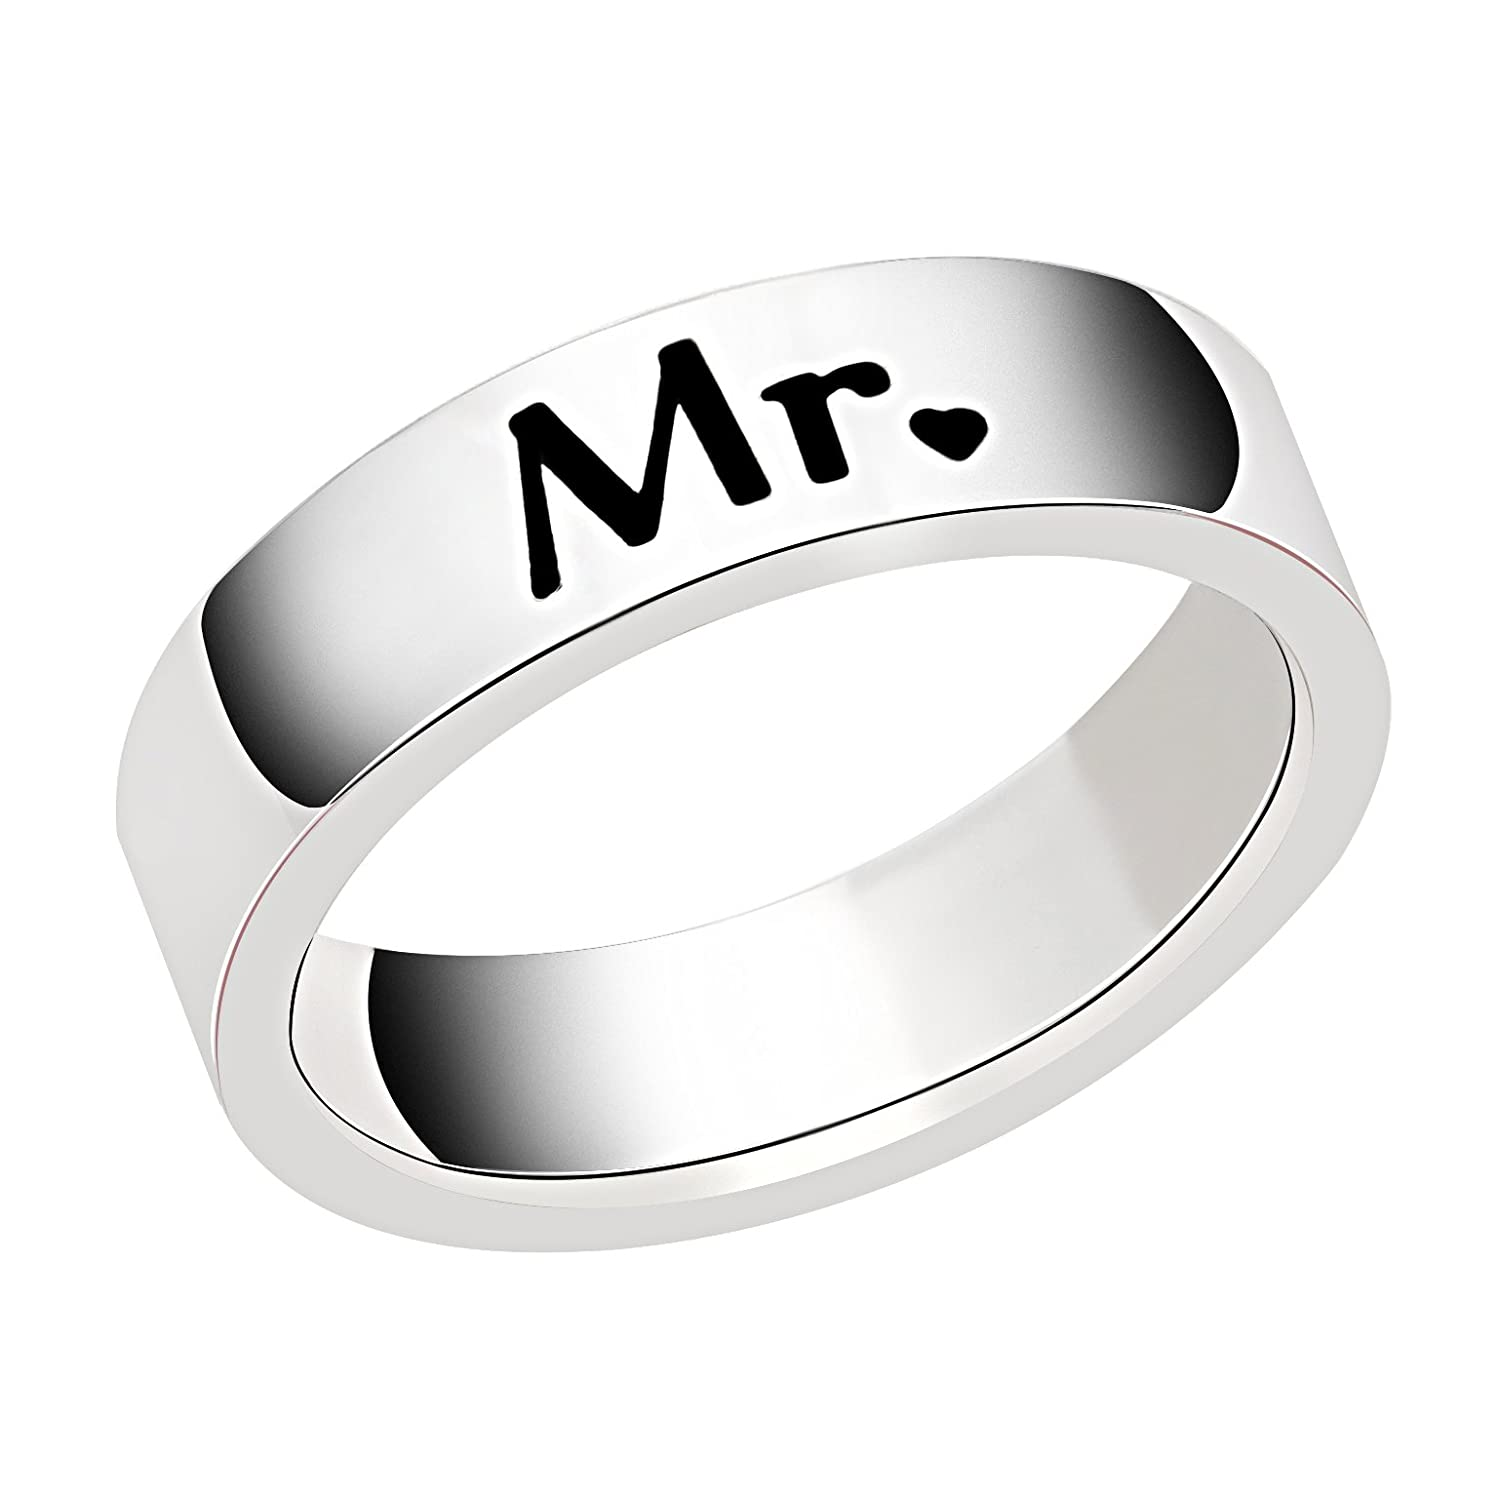 Couples Rings Wedding Band Engagement Valentine Anniversary Gift